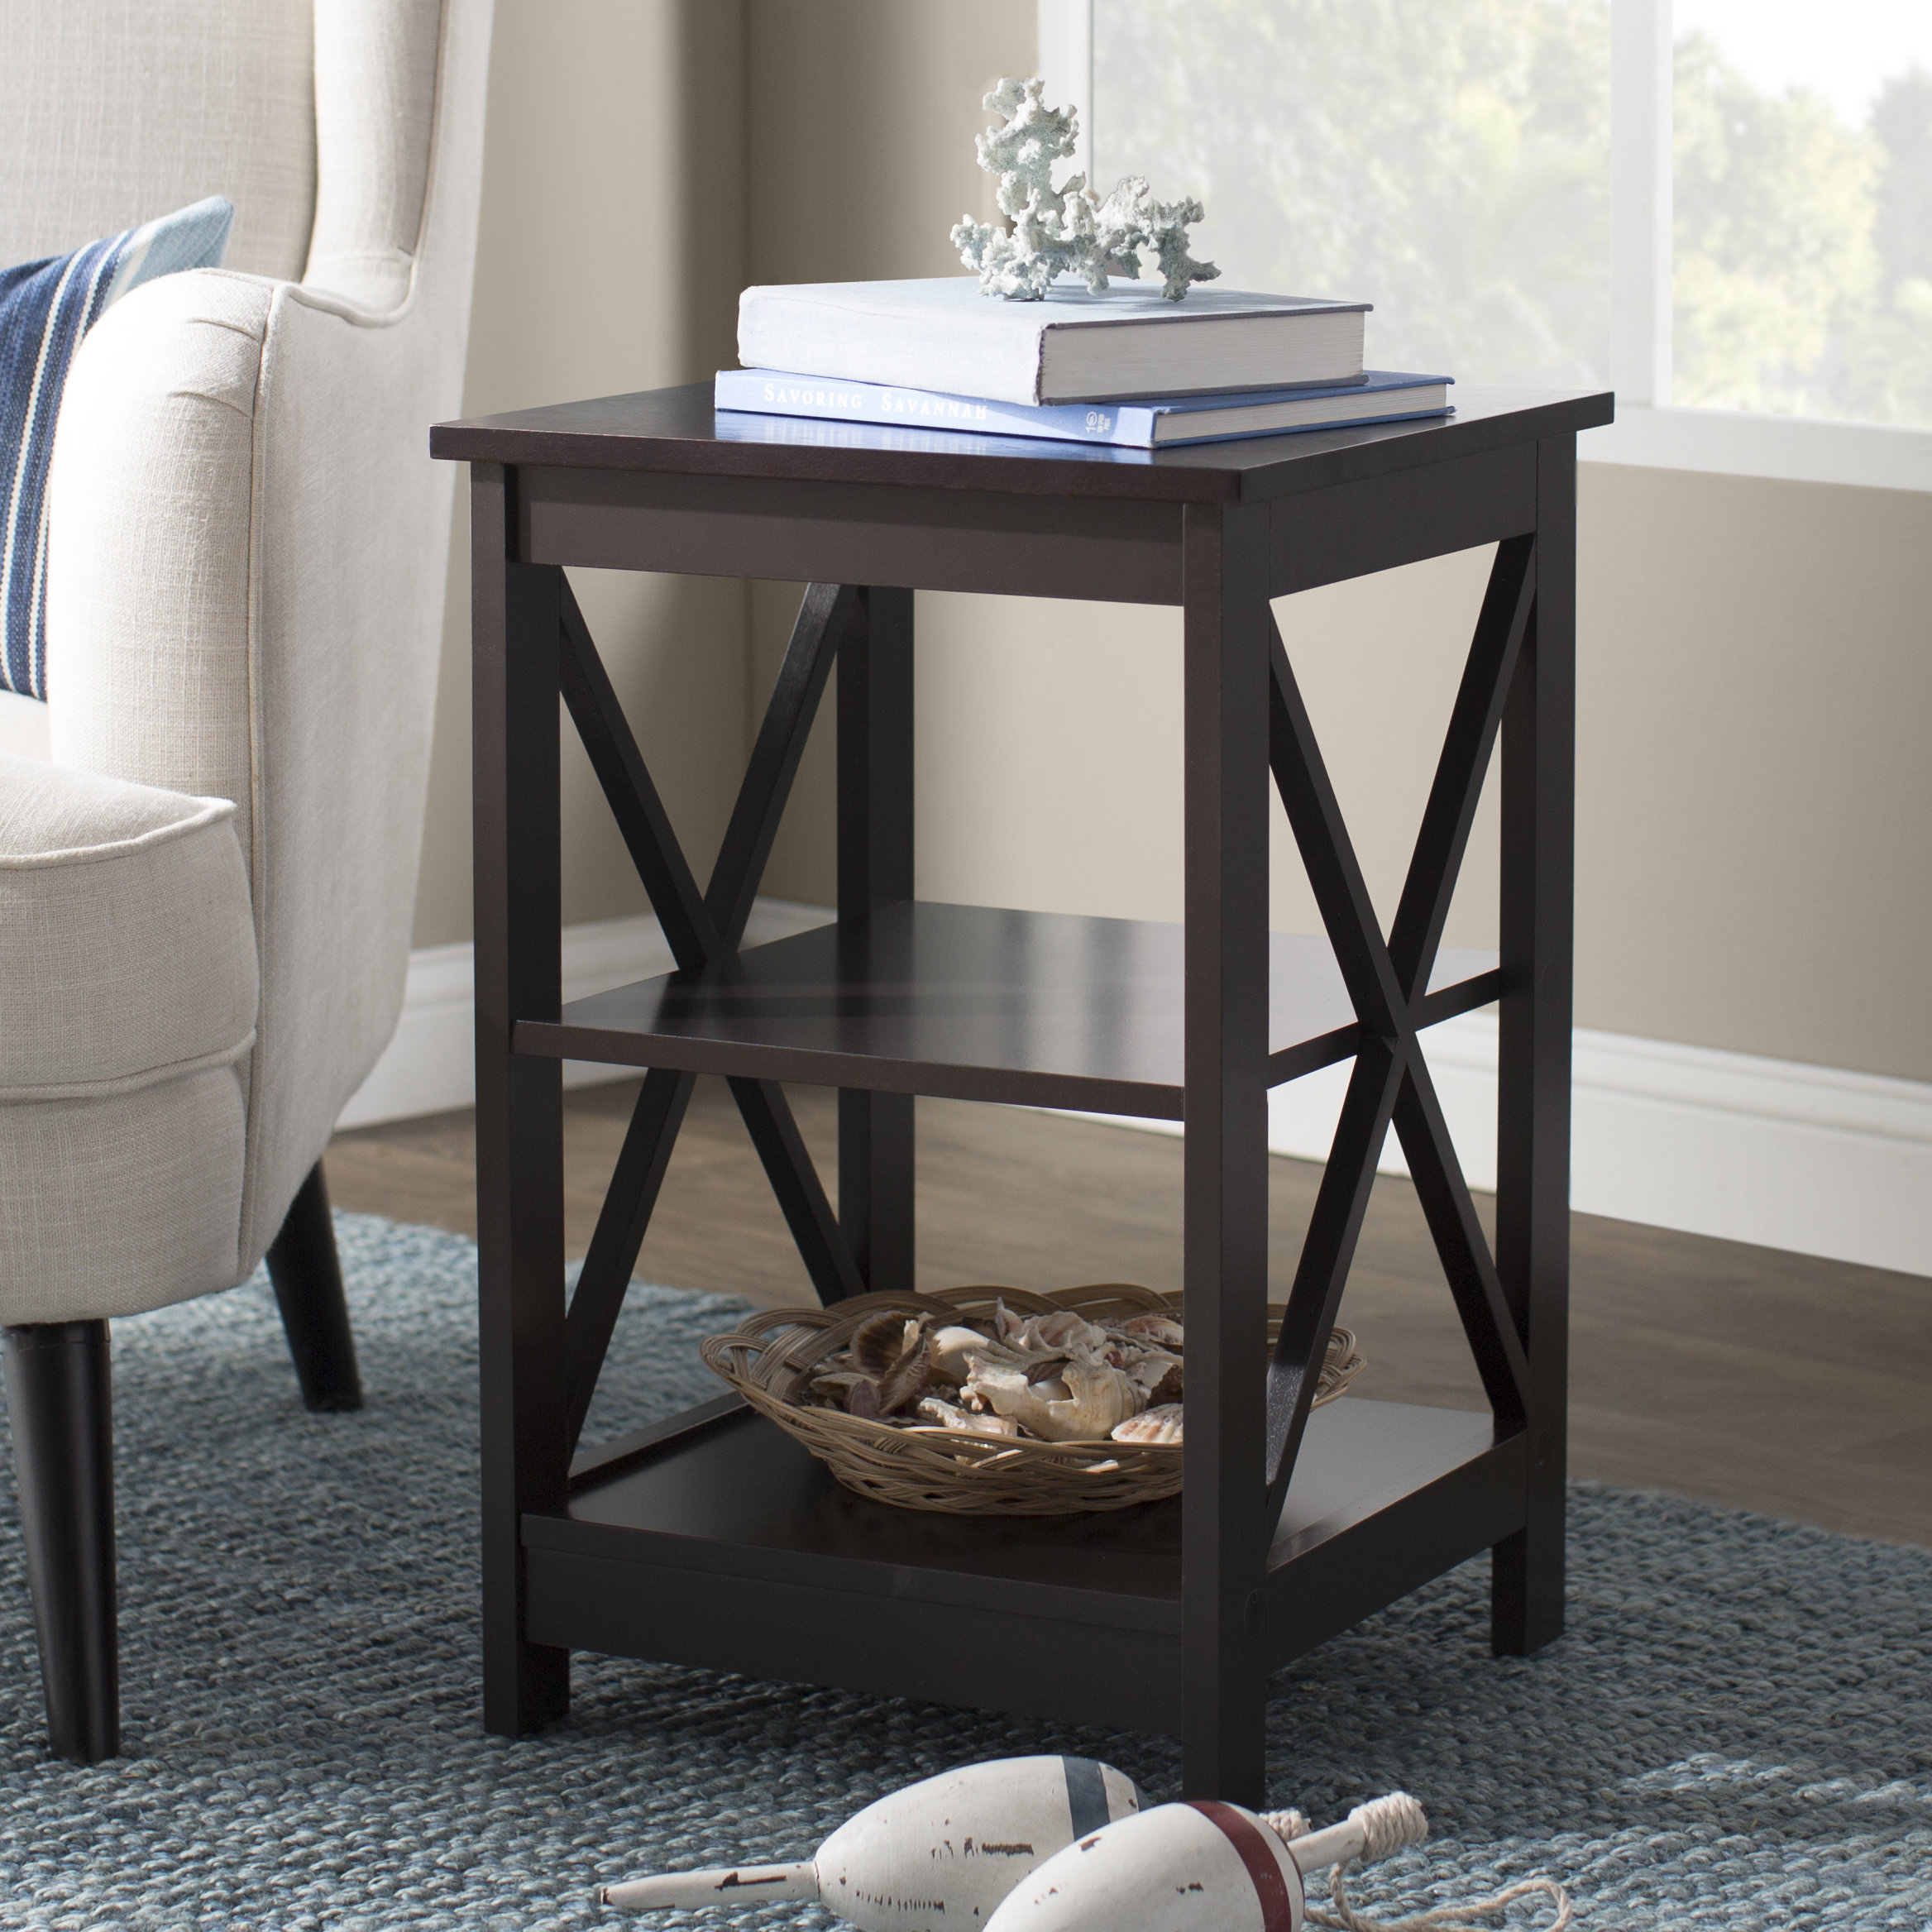 barnwood side table stoneford end room essentials mixed material accent quickview victorian living furniture raw wood aluminium door threshold trim country tablecloths stylish